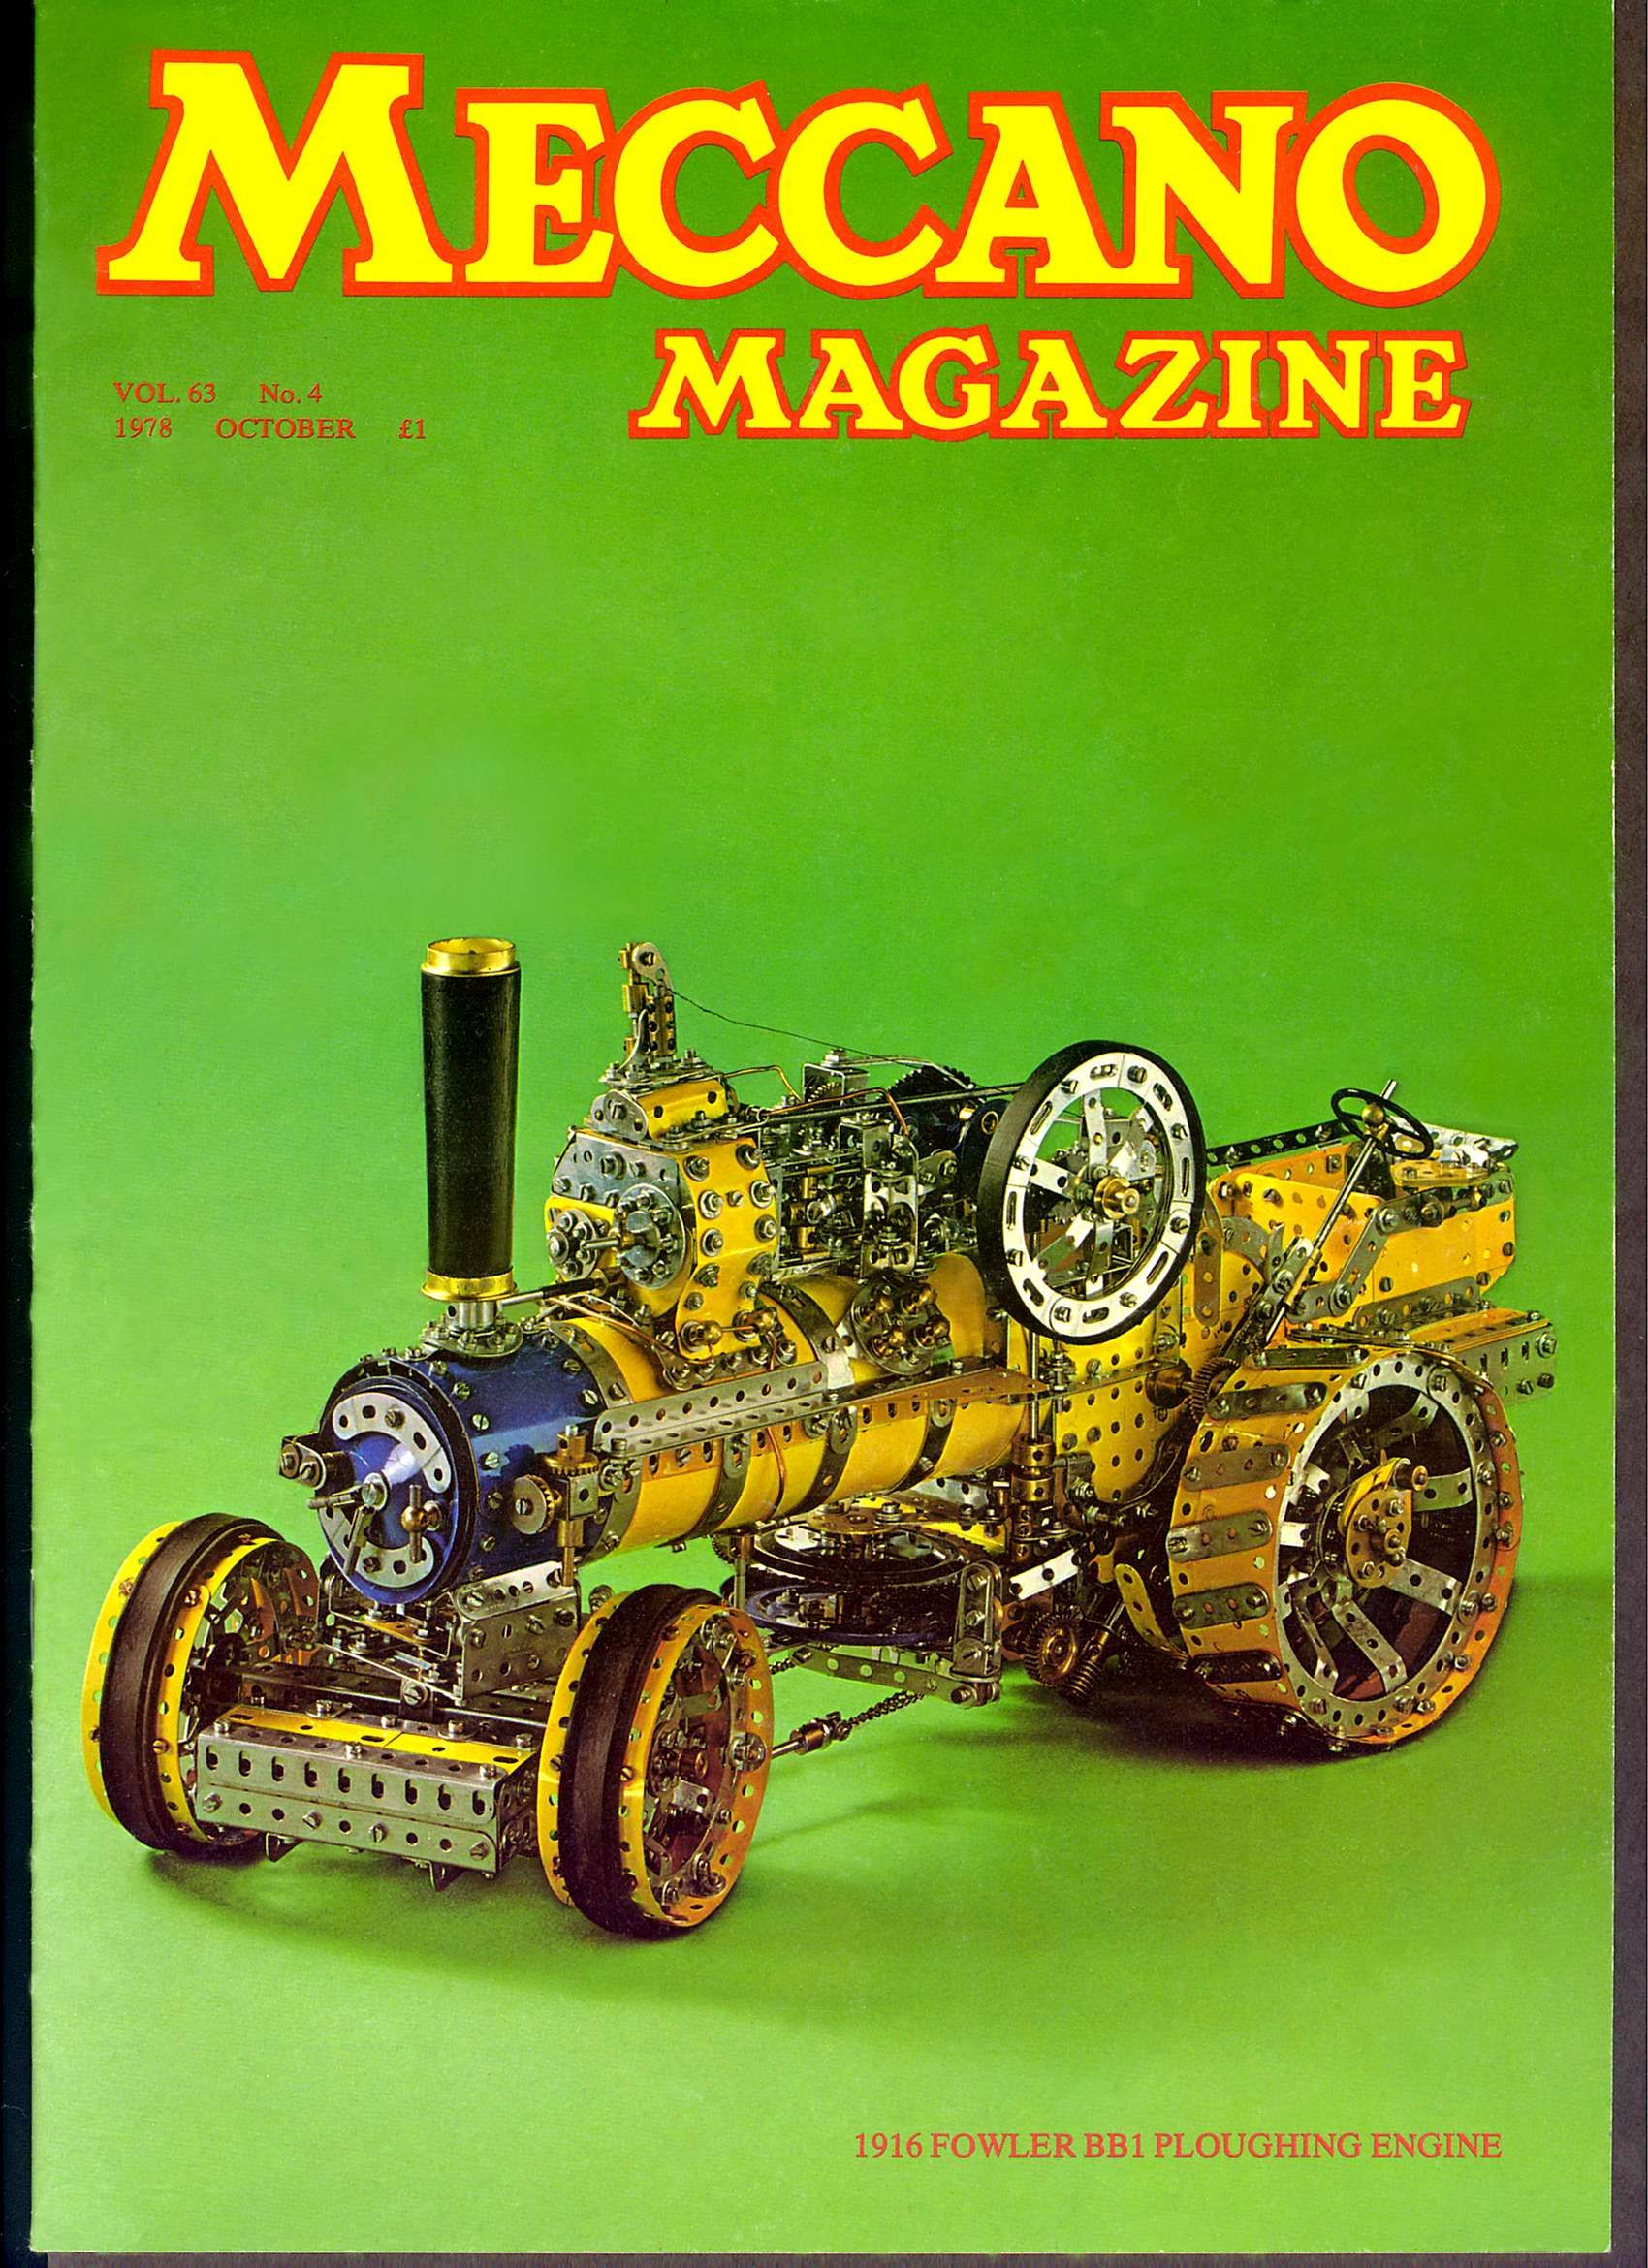 Ploughing engine in the cover of a  Meccano Magazine of the 70's